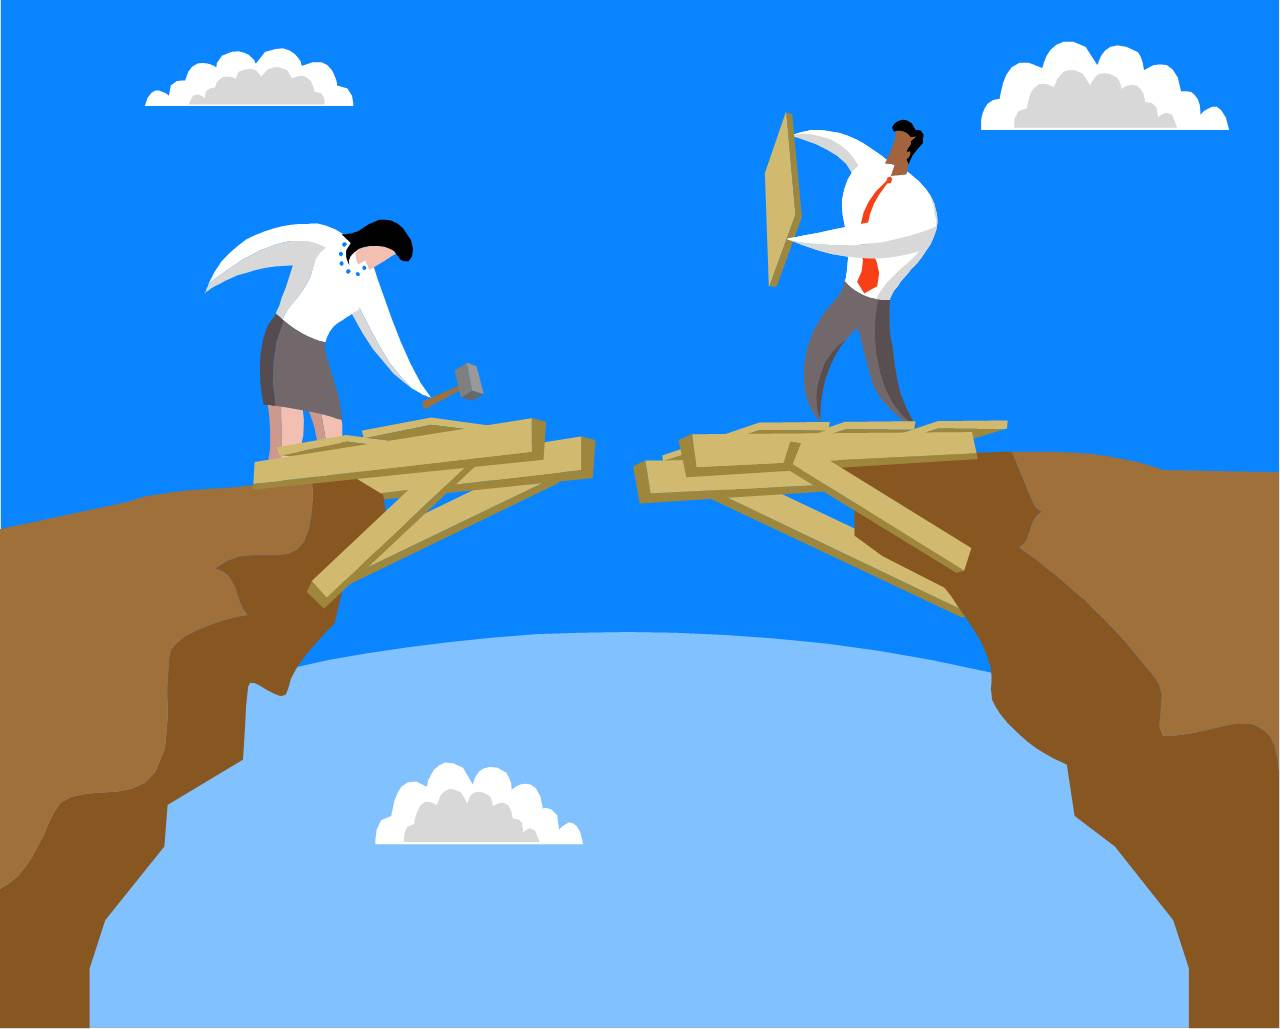 Man and woman building bridges